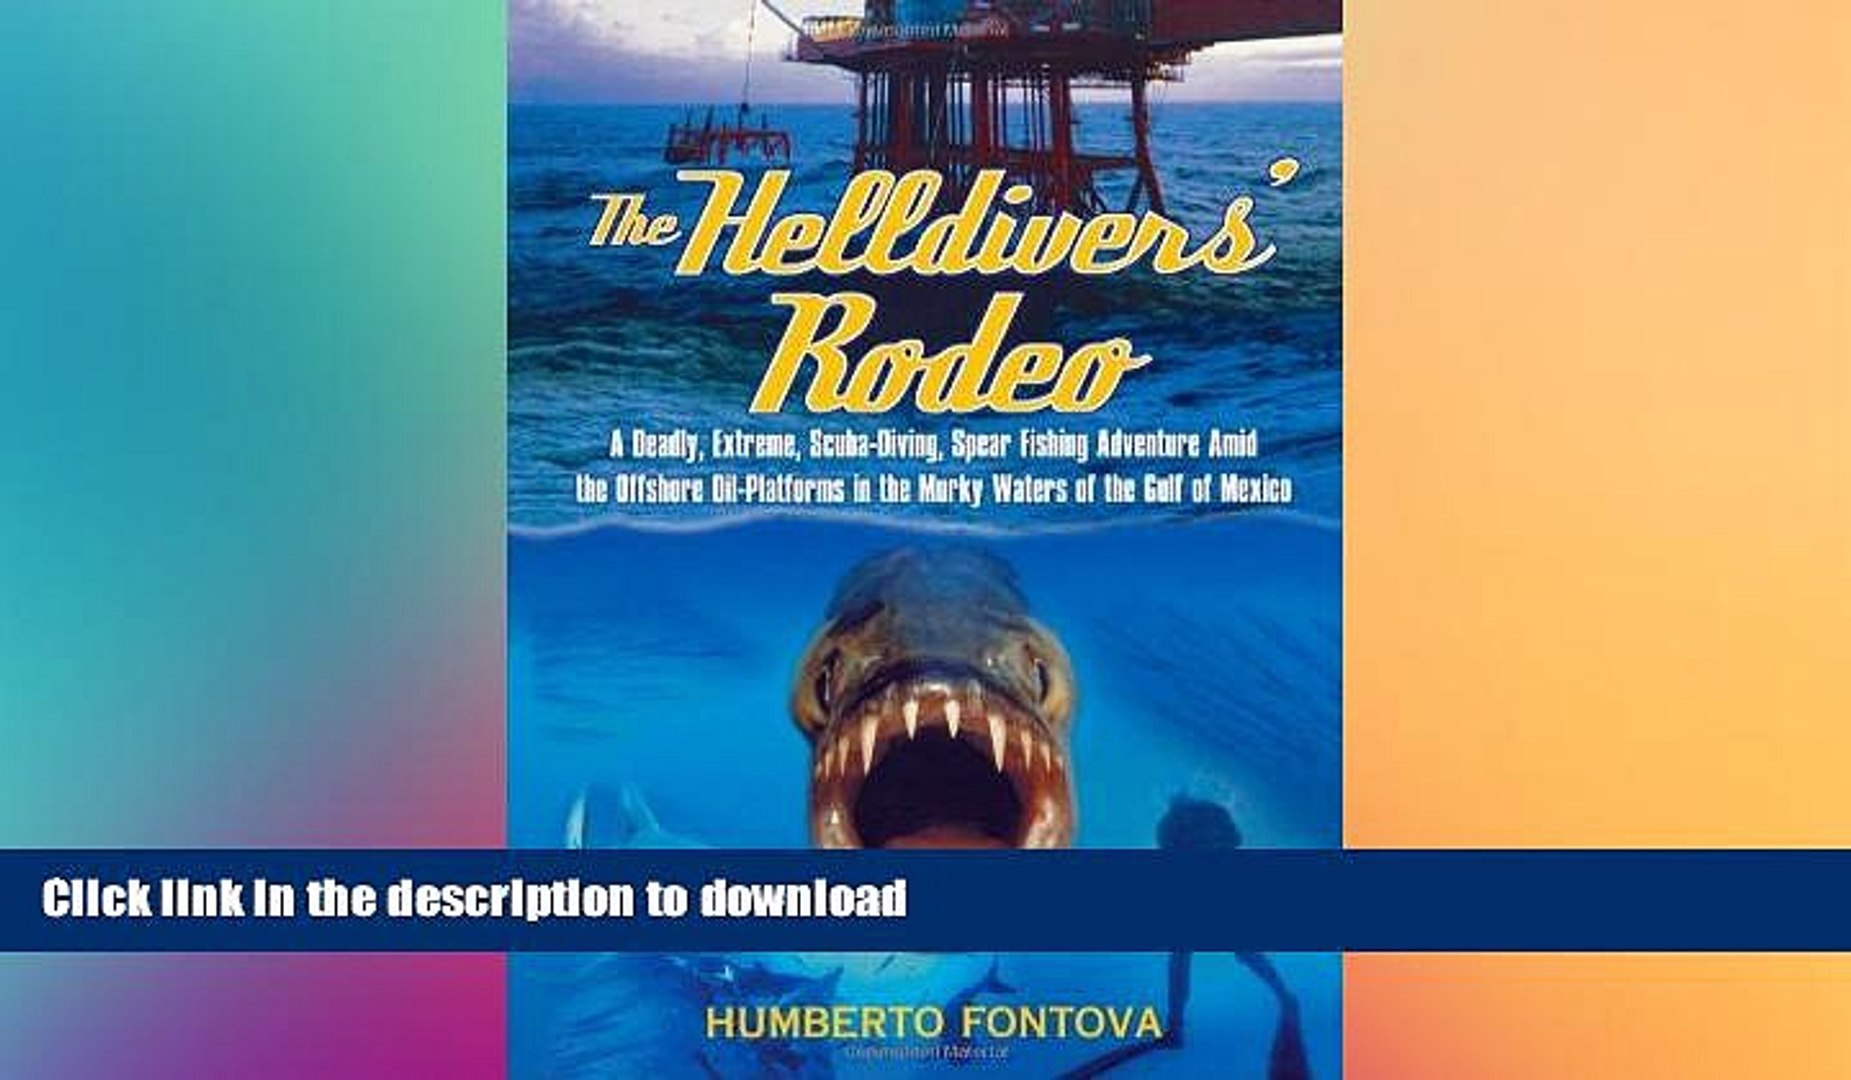 Scuba-Diving Extreme The Helldivers Rodeo: A Deadly Spear Fishing Adventure Amid the Offshore Oil-Platforms in the Murky Waters of the Gulf of Mexico